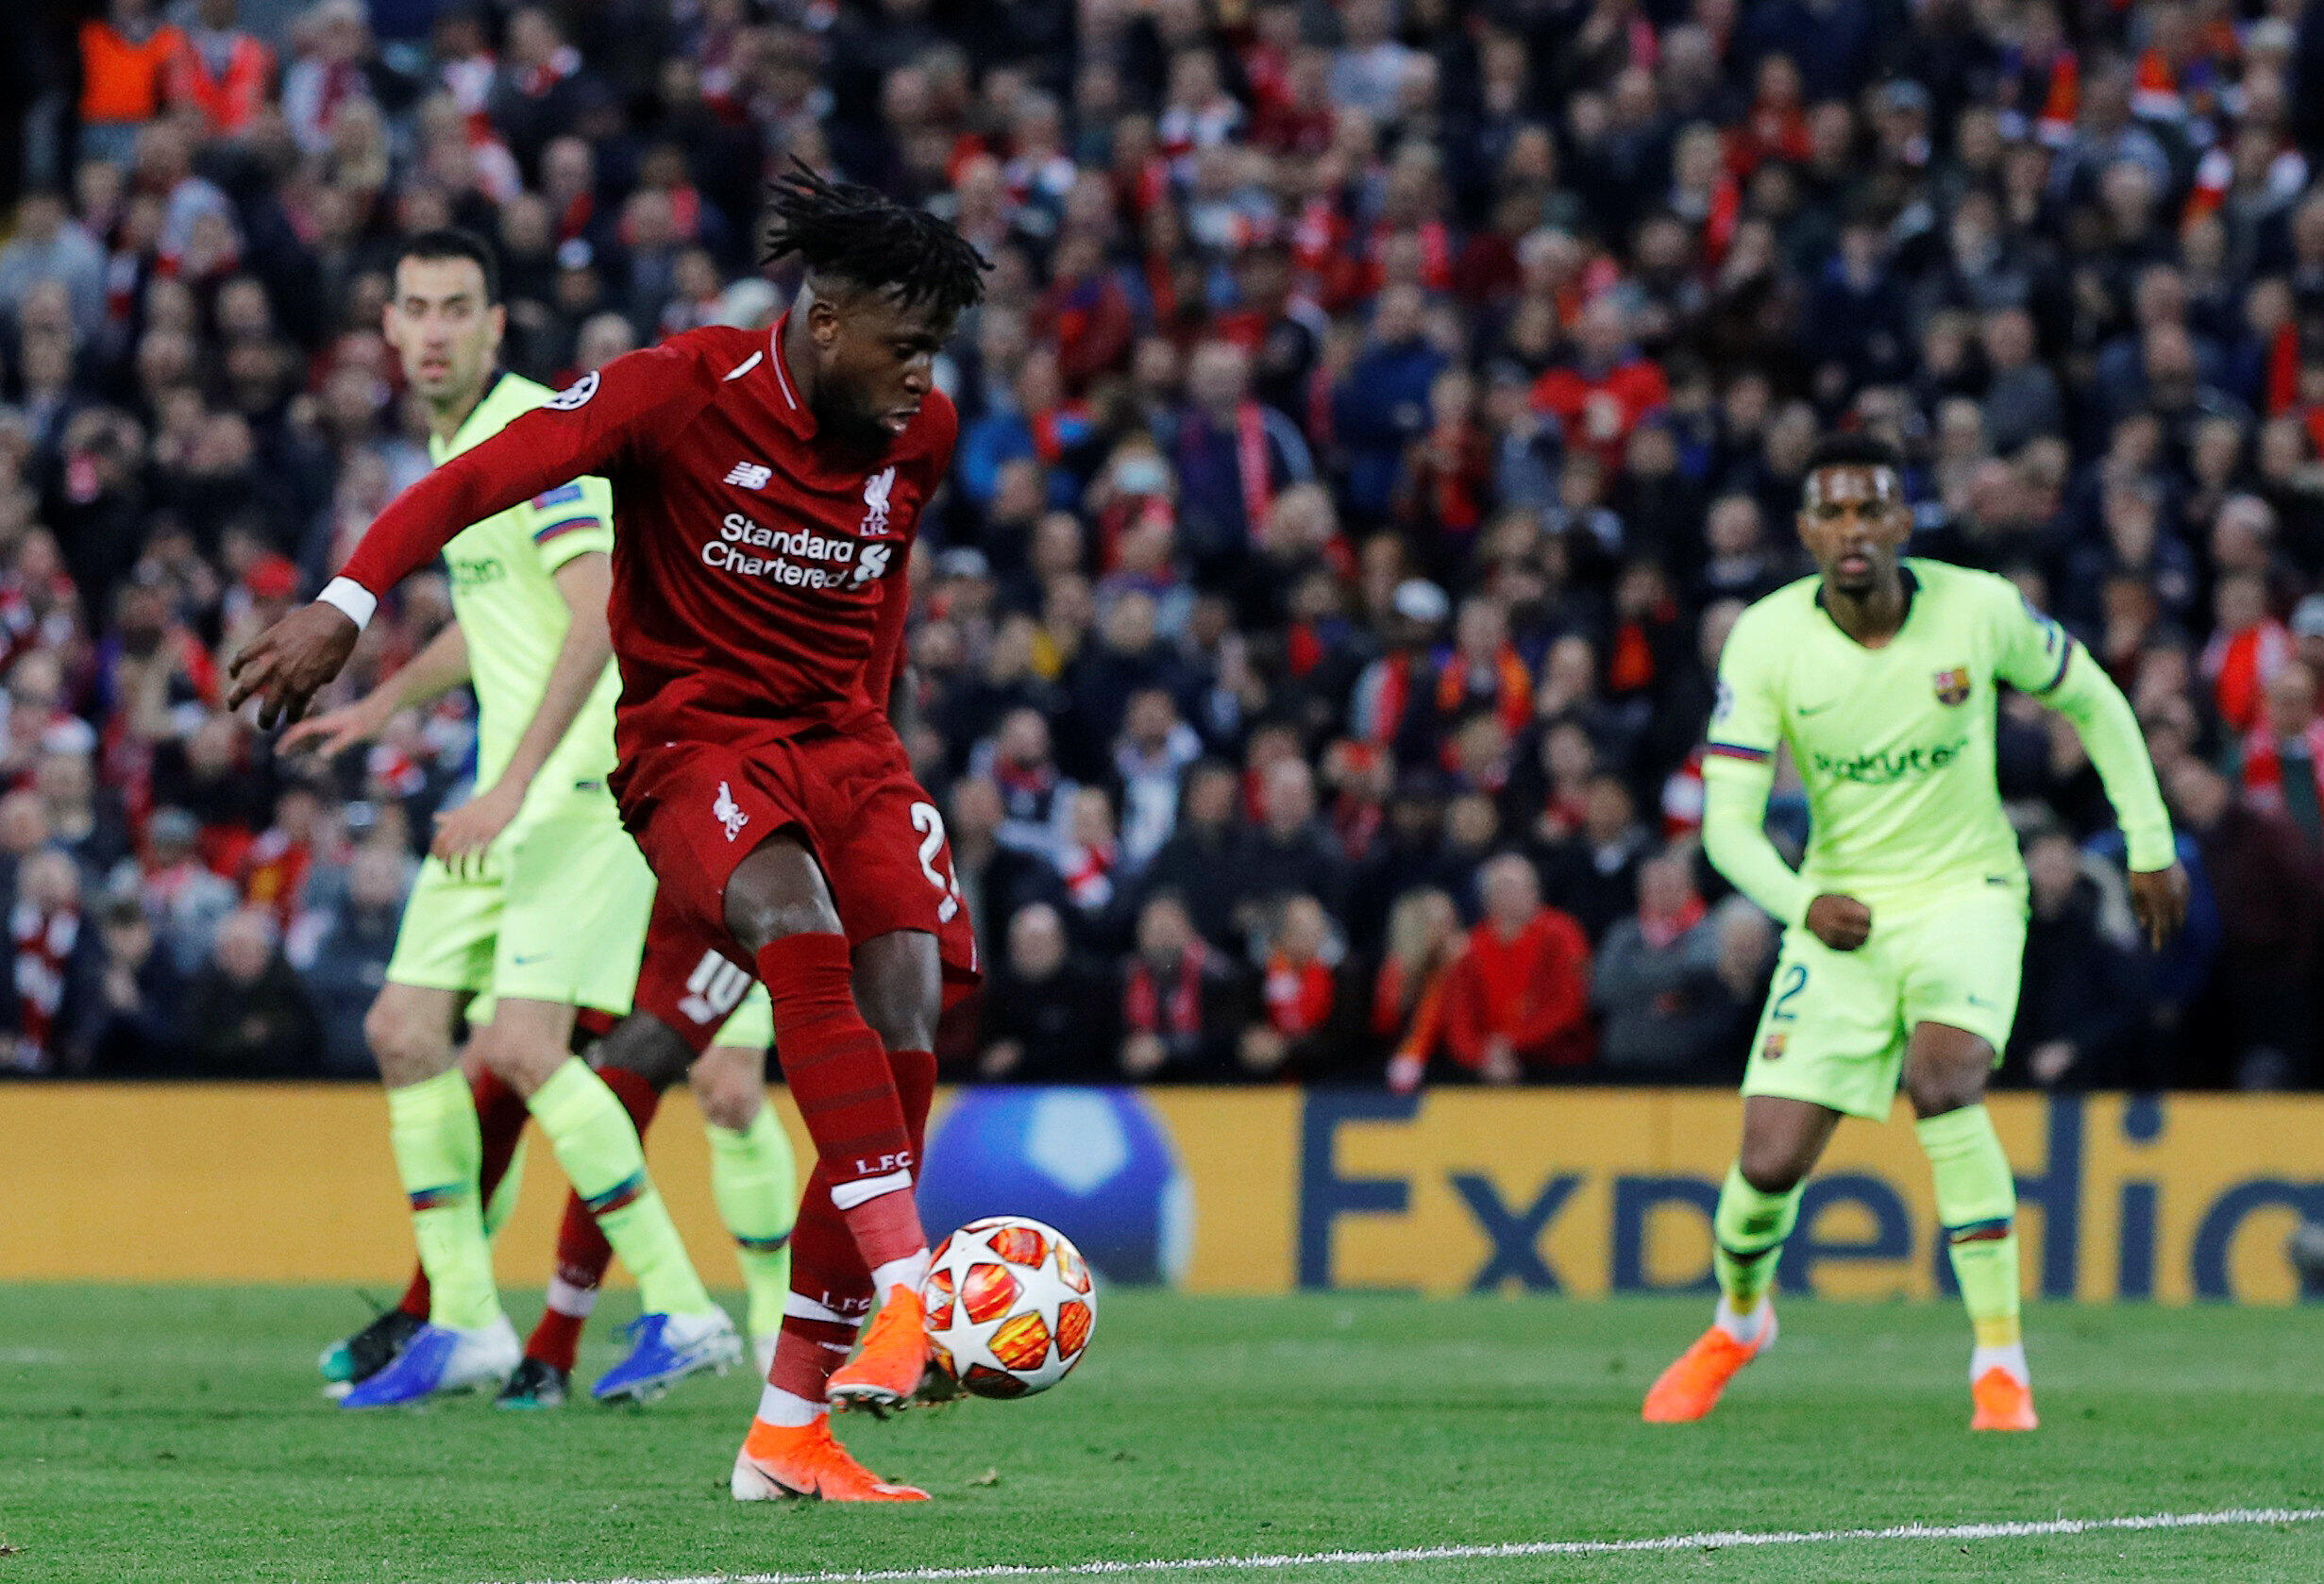 Divock Origi scored Liverpool's first and fourth goal in the 4-0 destruction of Barcelona.